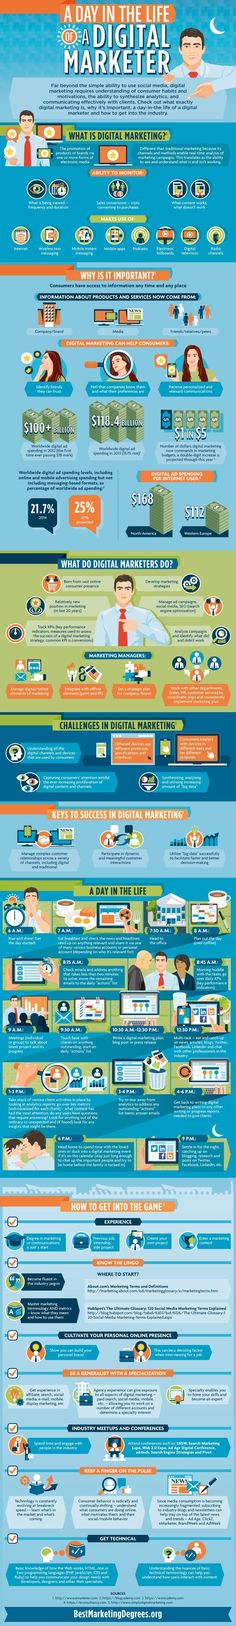 A Day in the Life of a Digital Marketer Latest News & Trends in #digitalmarketing 2015 | http://webworksagency.com